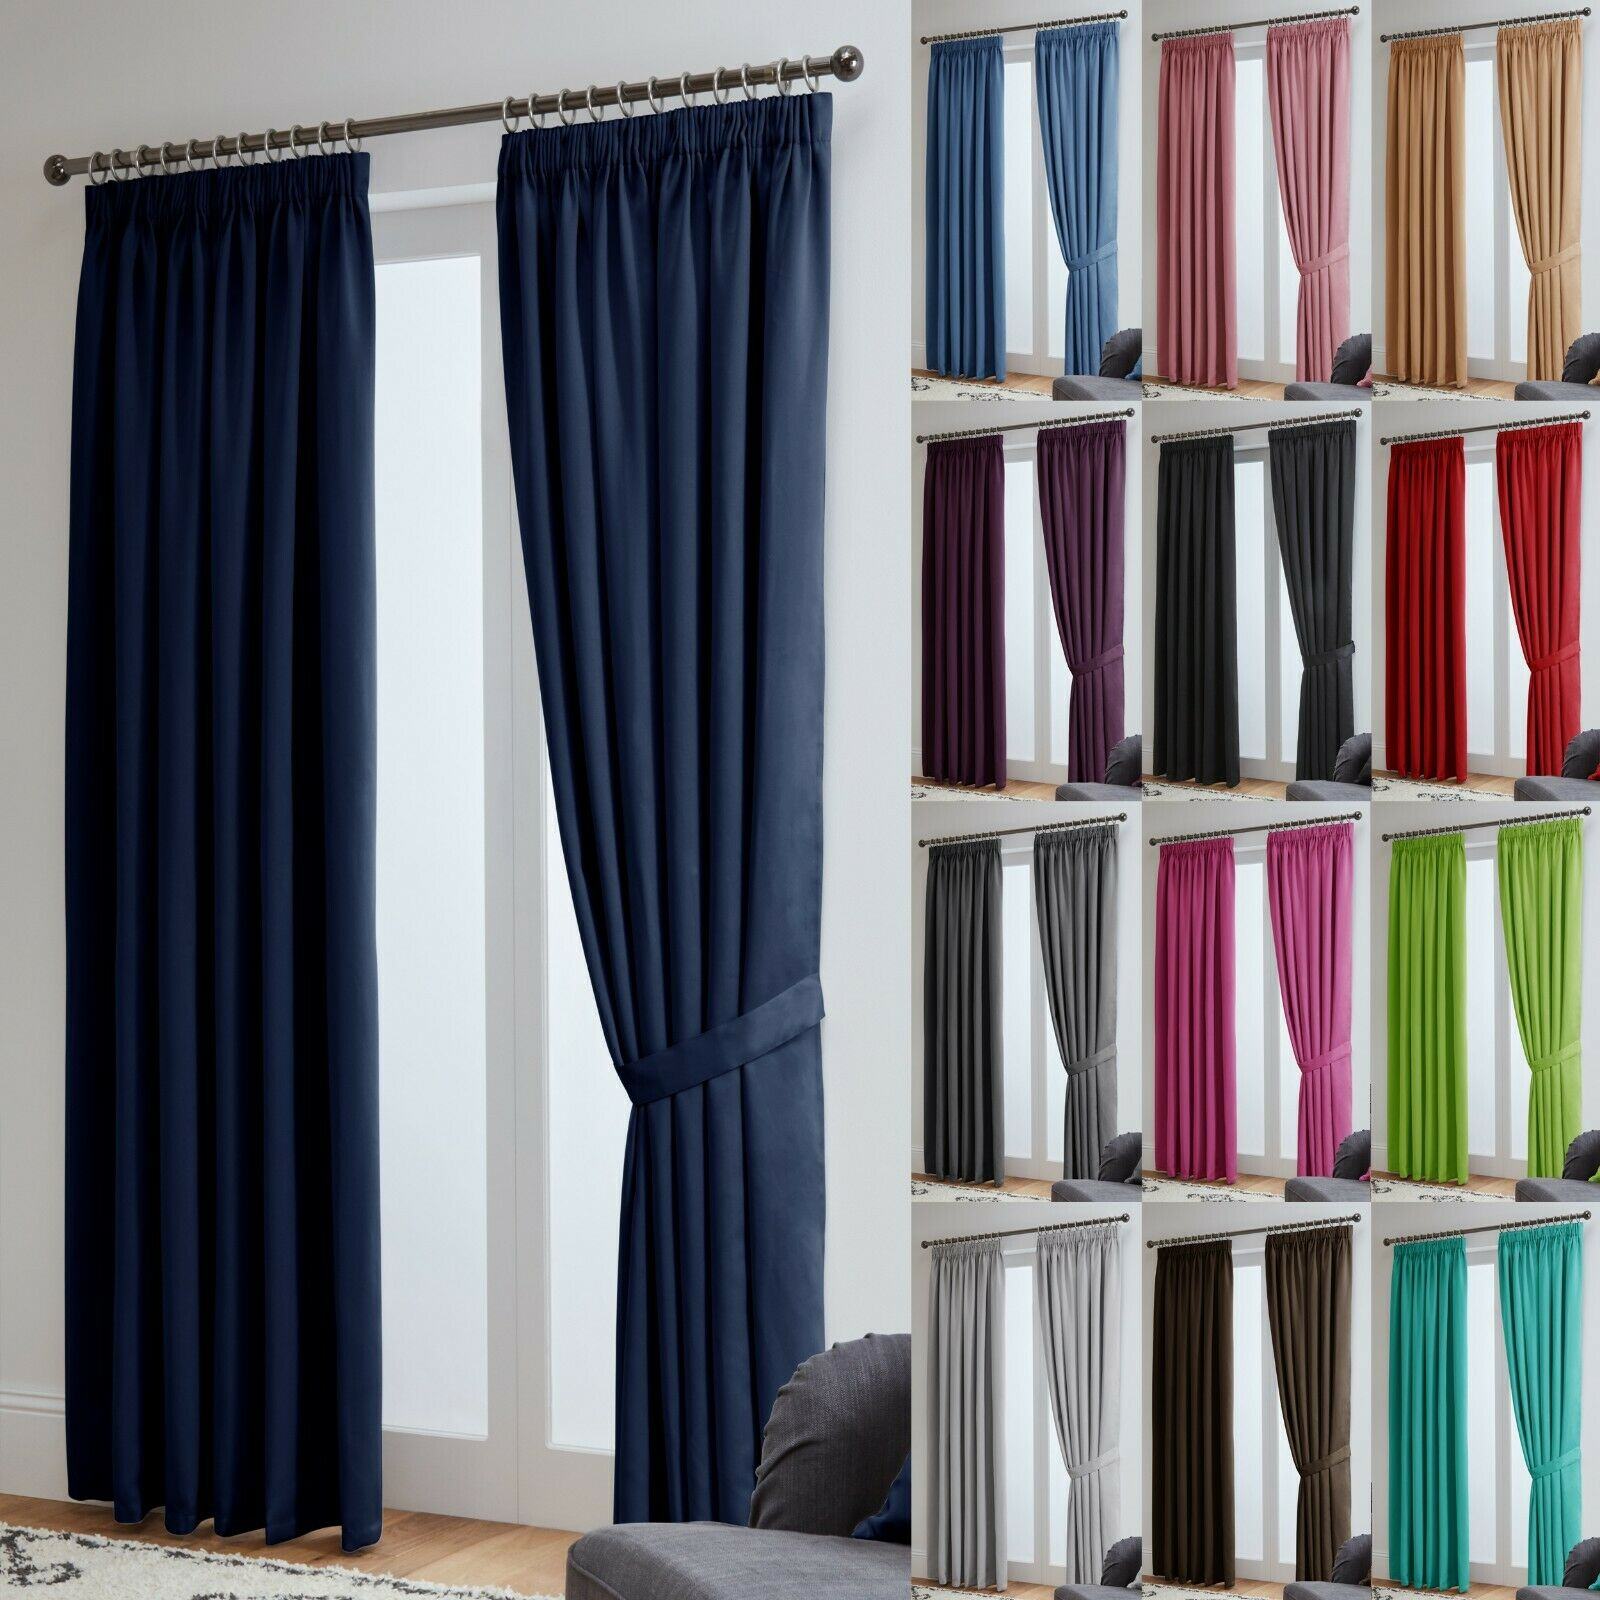 curtains - Blackout Curtains Thermal Pencil Pleat Tape Top - Energy Saving + Tie Backs